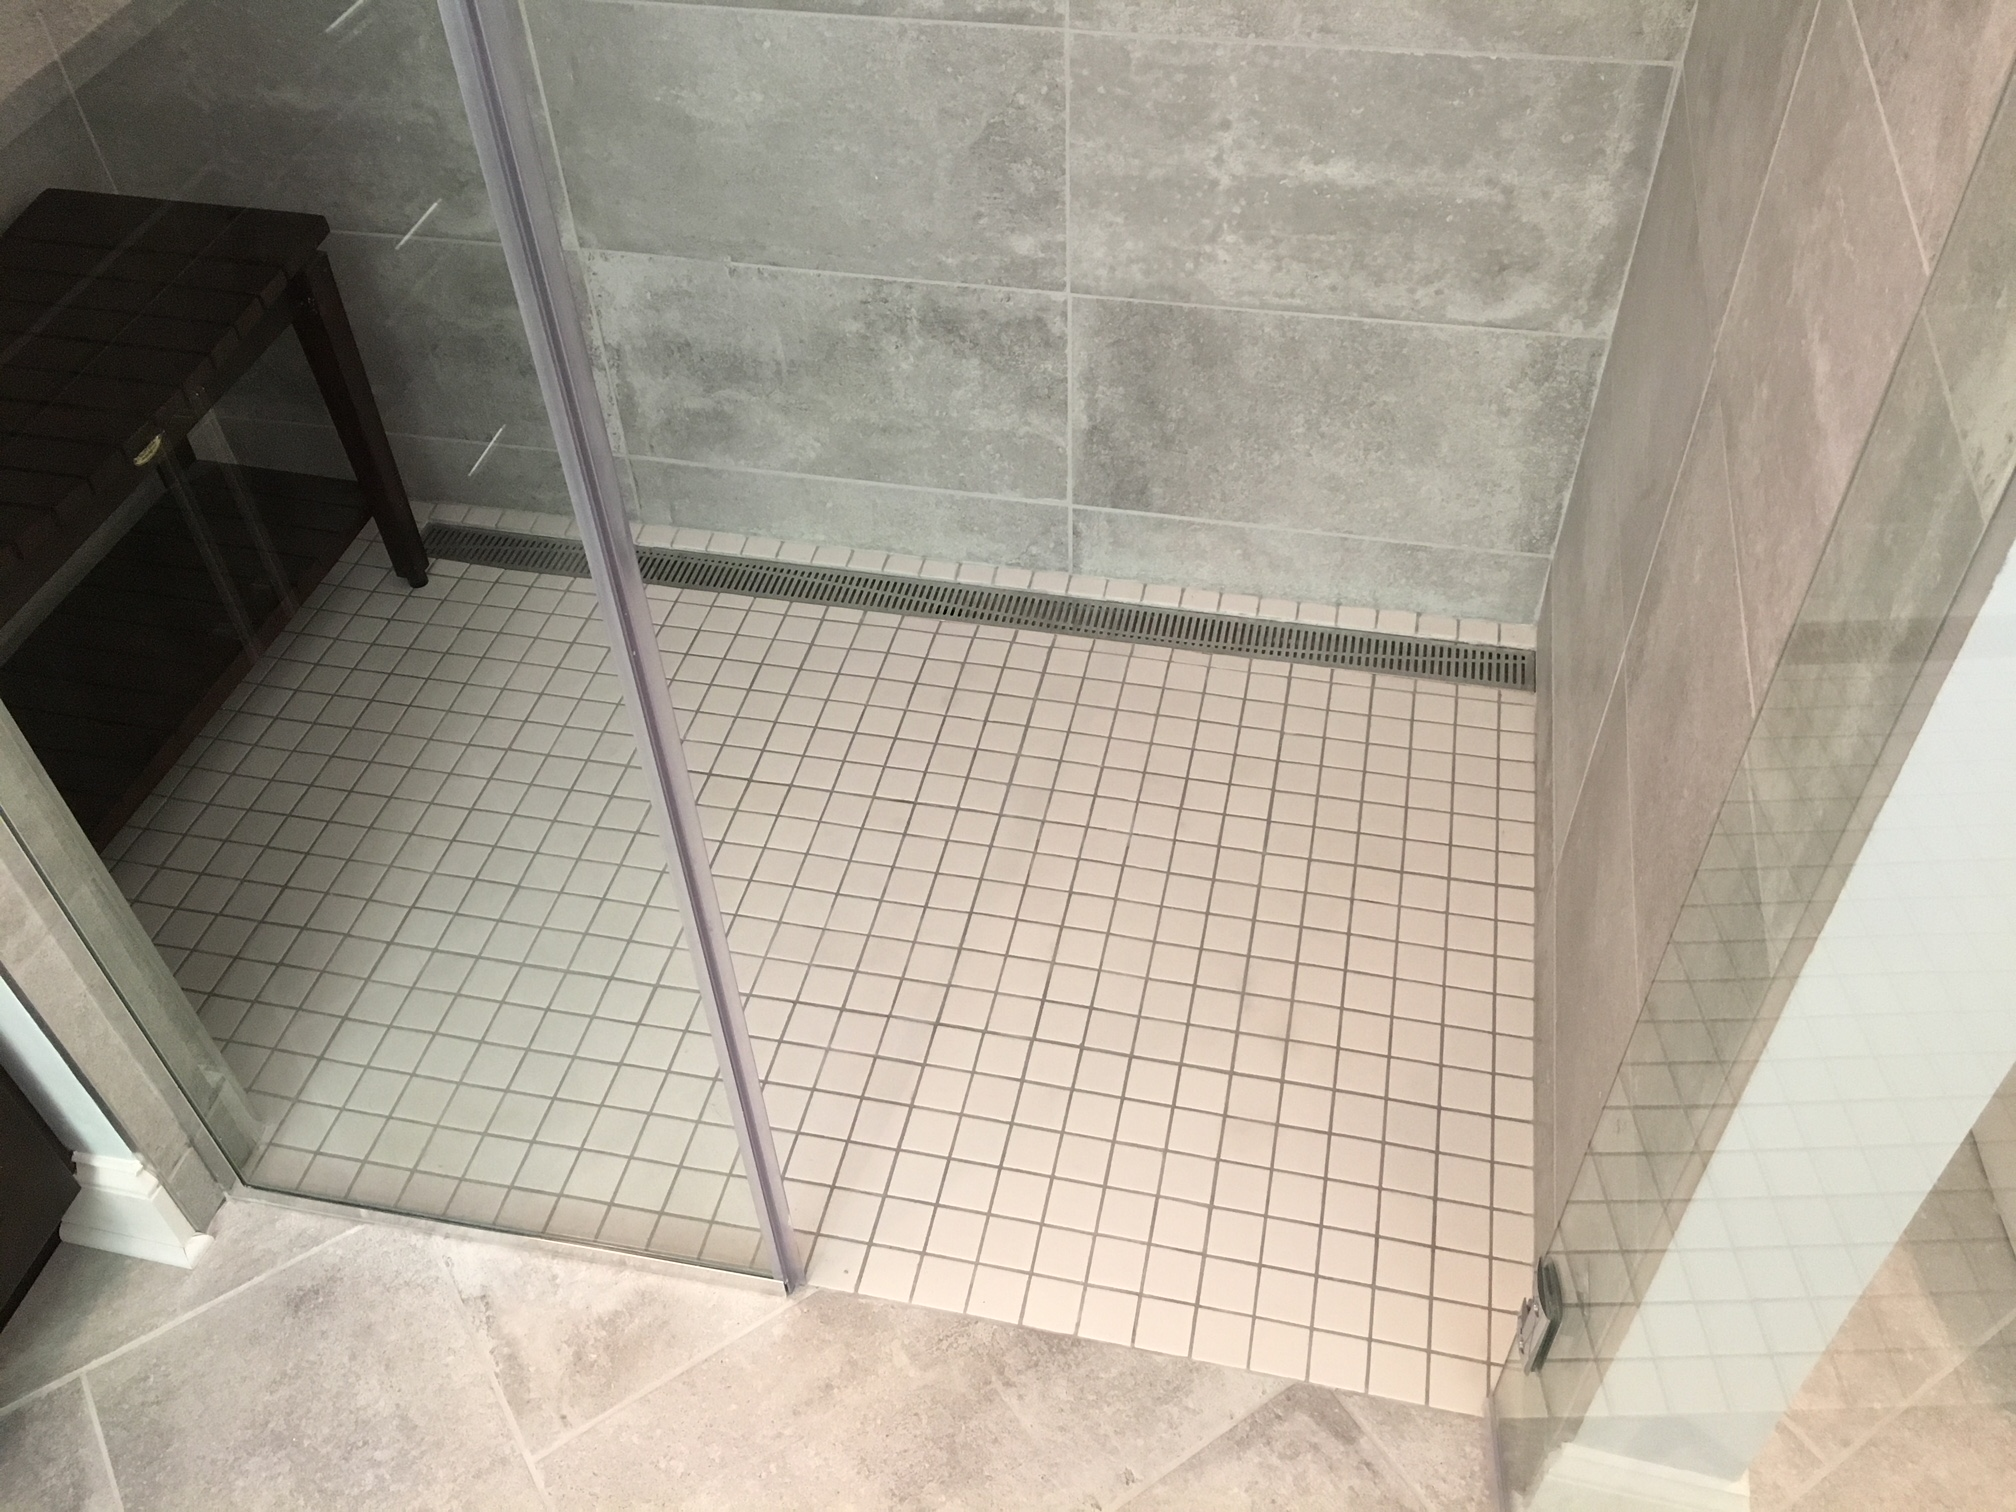 Summerfield Tile Shower Floor Modern Drain